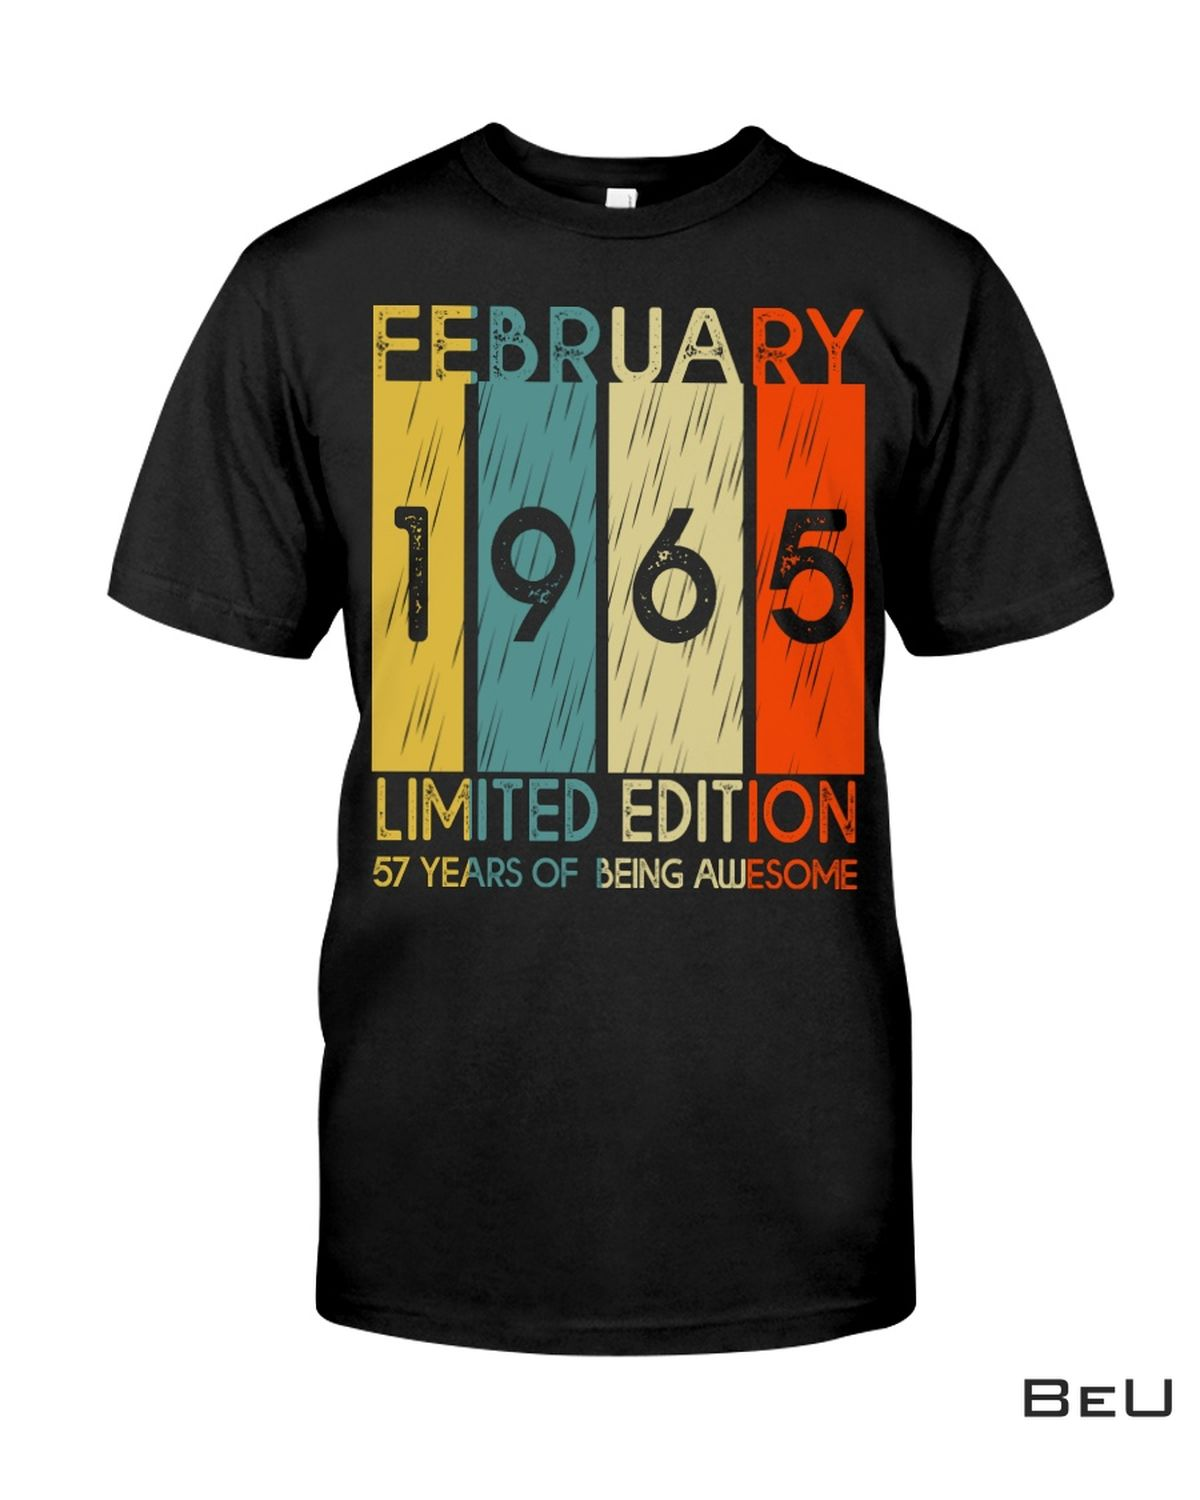 February 1965 Limited Edition 57 Years Of Being Awesome Shirt, hoodie